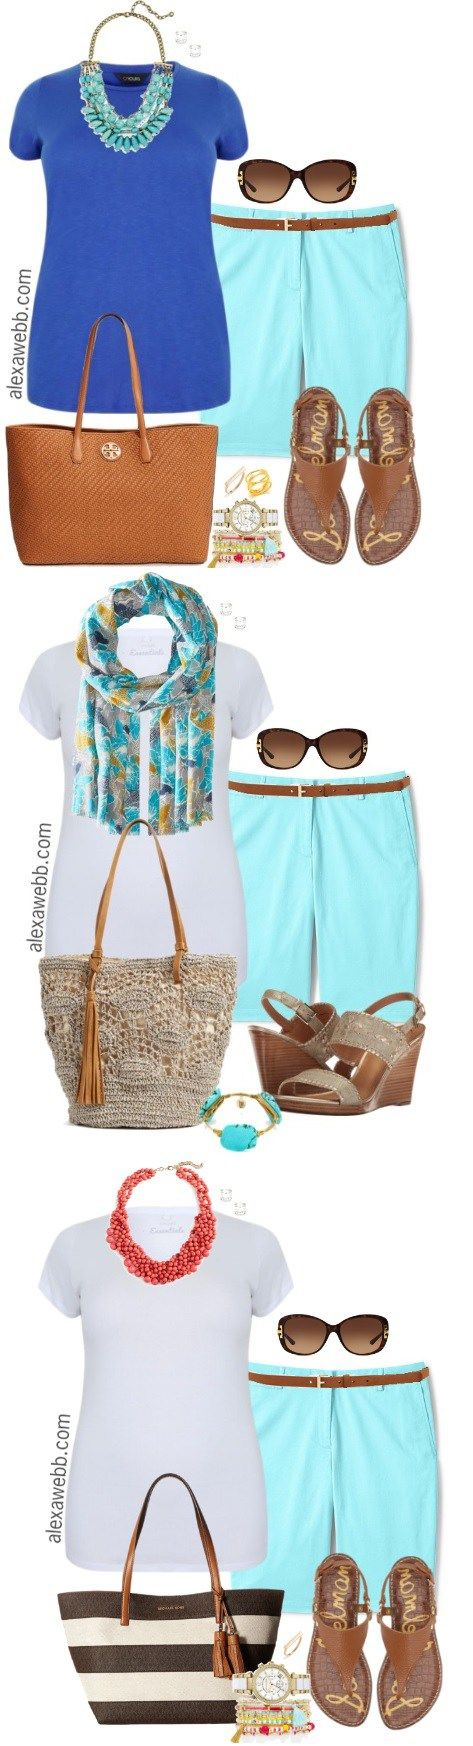 Plus Size Aqua Shorts Outfits - Plus Size Summer Outfits for Women - Plus Size Fashion - alexawebb.com #alexawebb